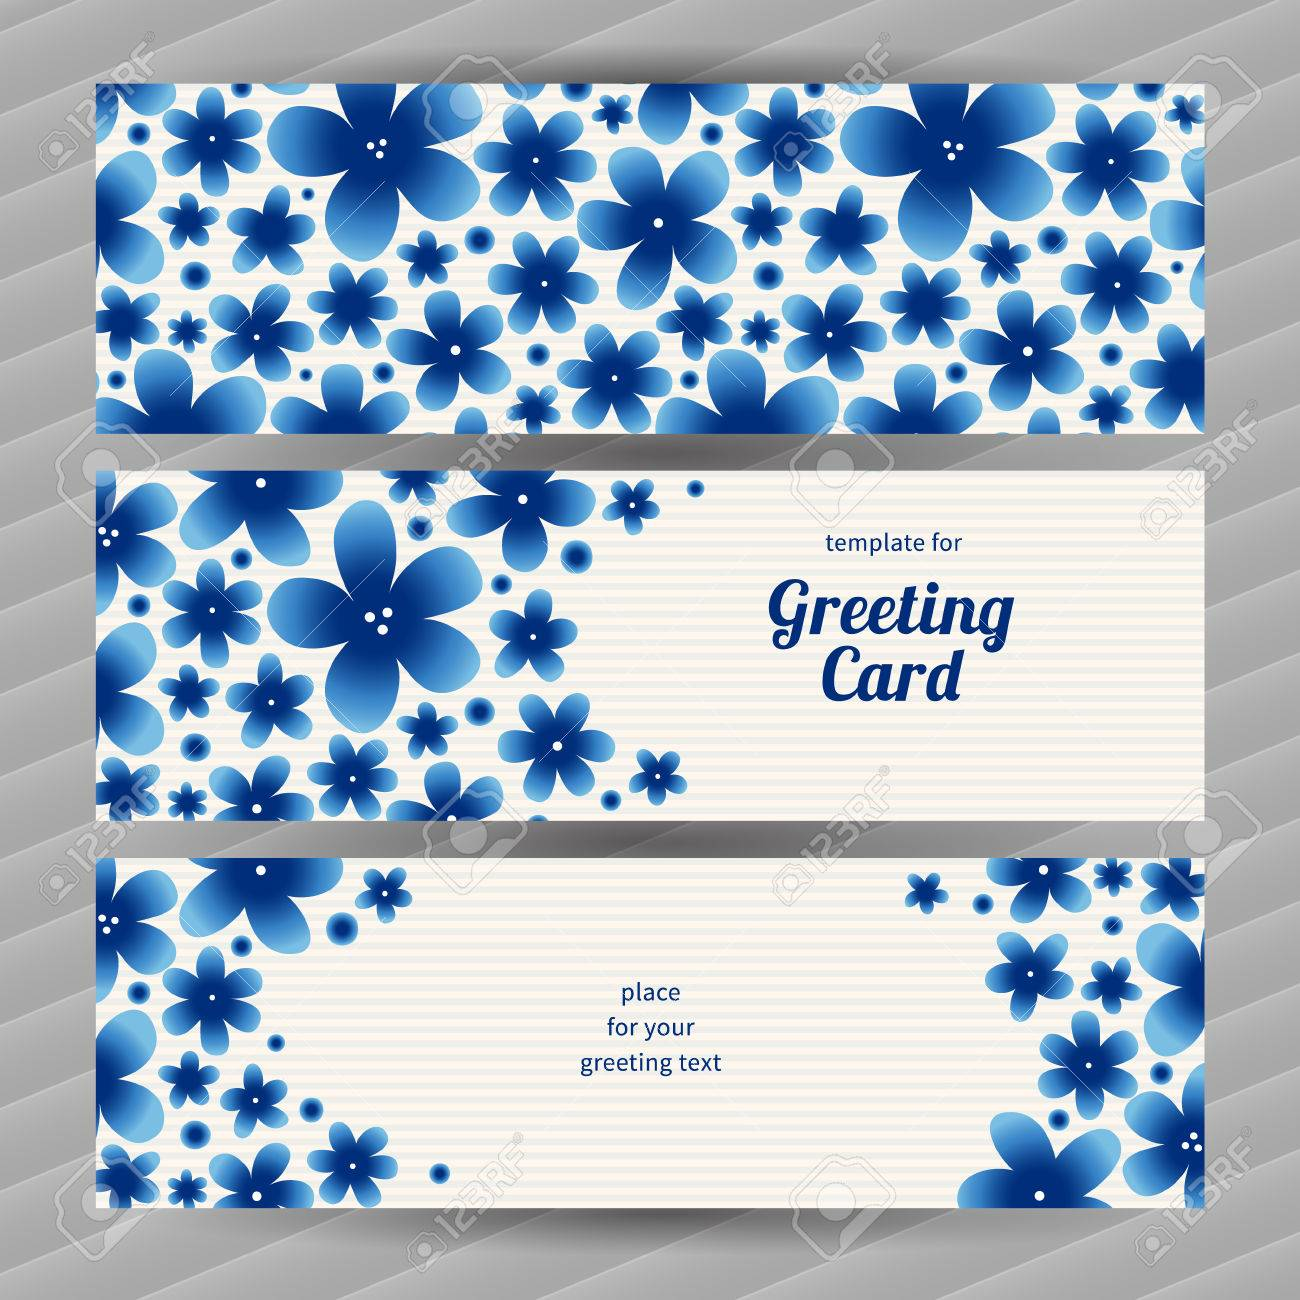 Bright Floral Card With Simple Flowers Blue Vintage Illustration Decorative Element For Design